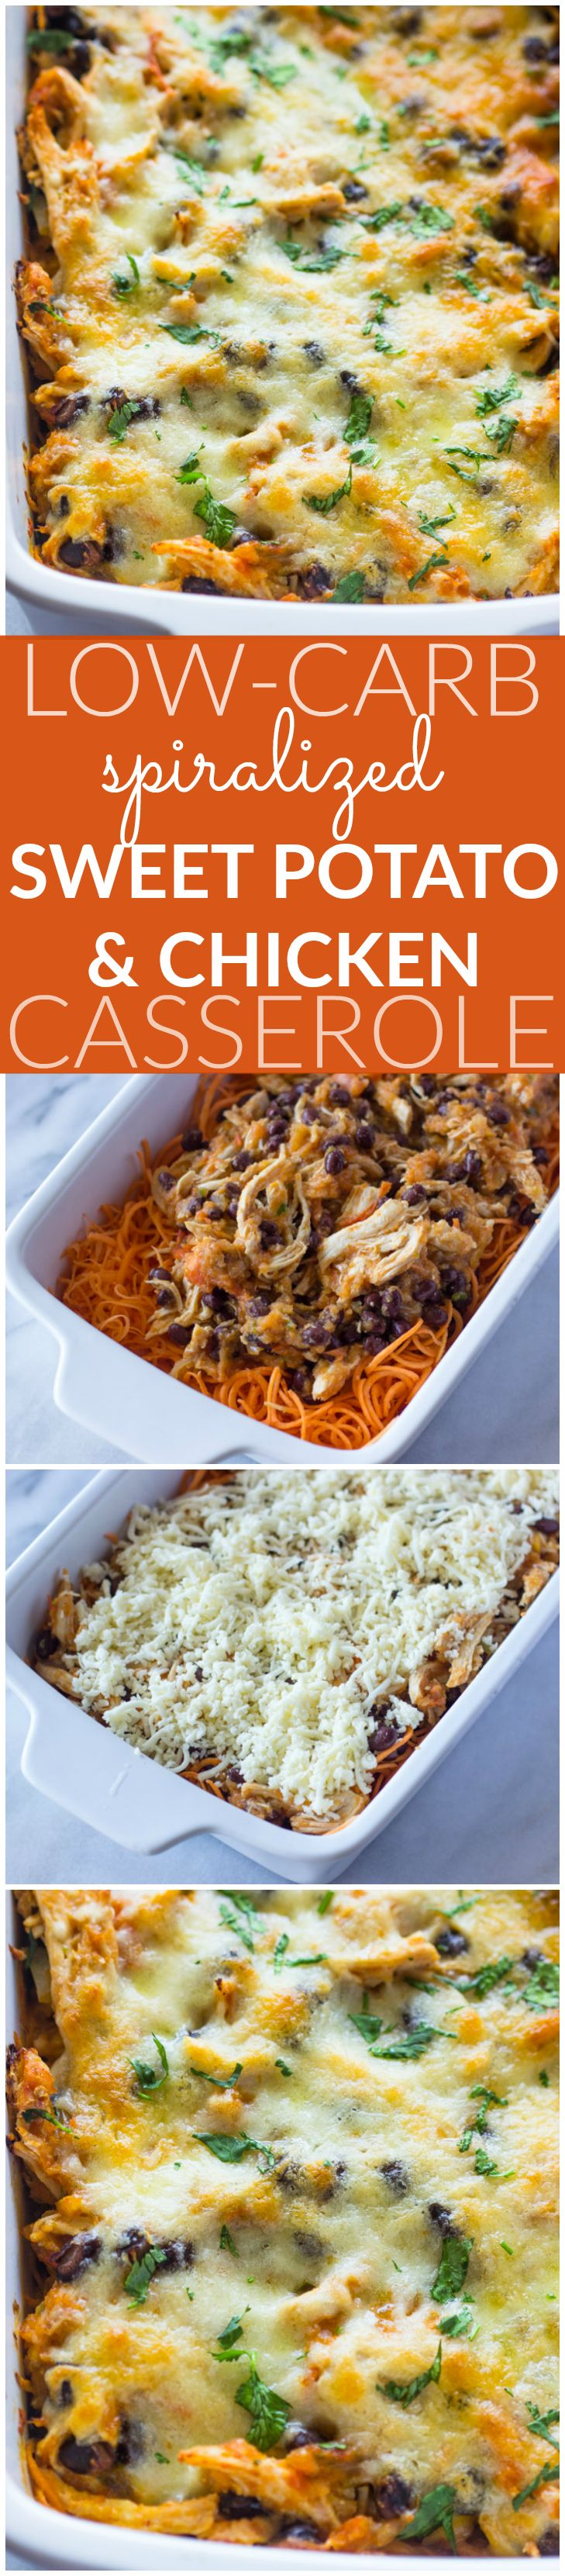 Tex-Mex Spiralized Sweet Potato & Chicken Casserole (Healthy, Low-Carb) | Gimme Delicious